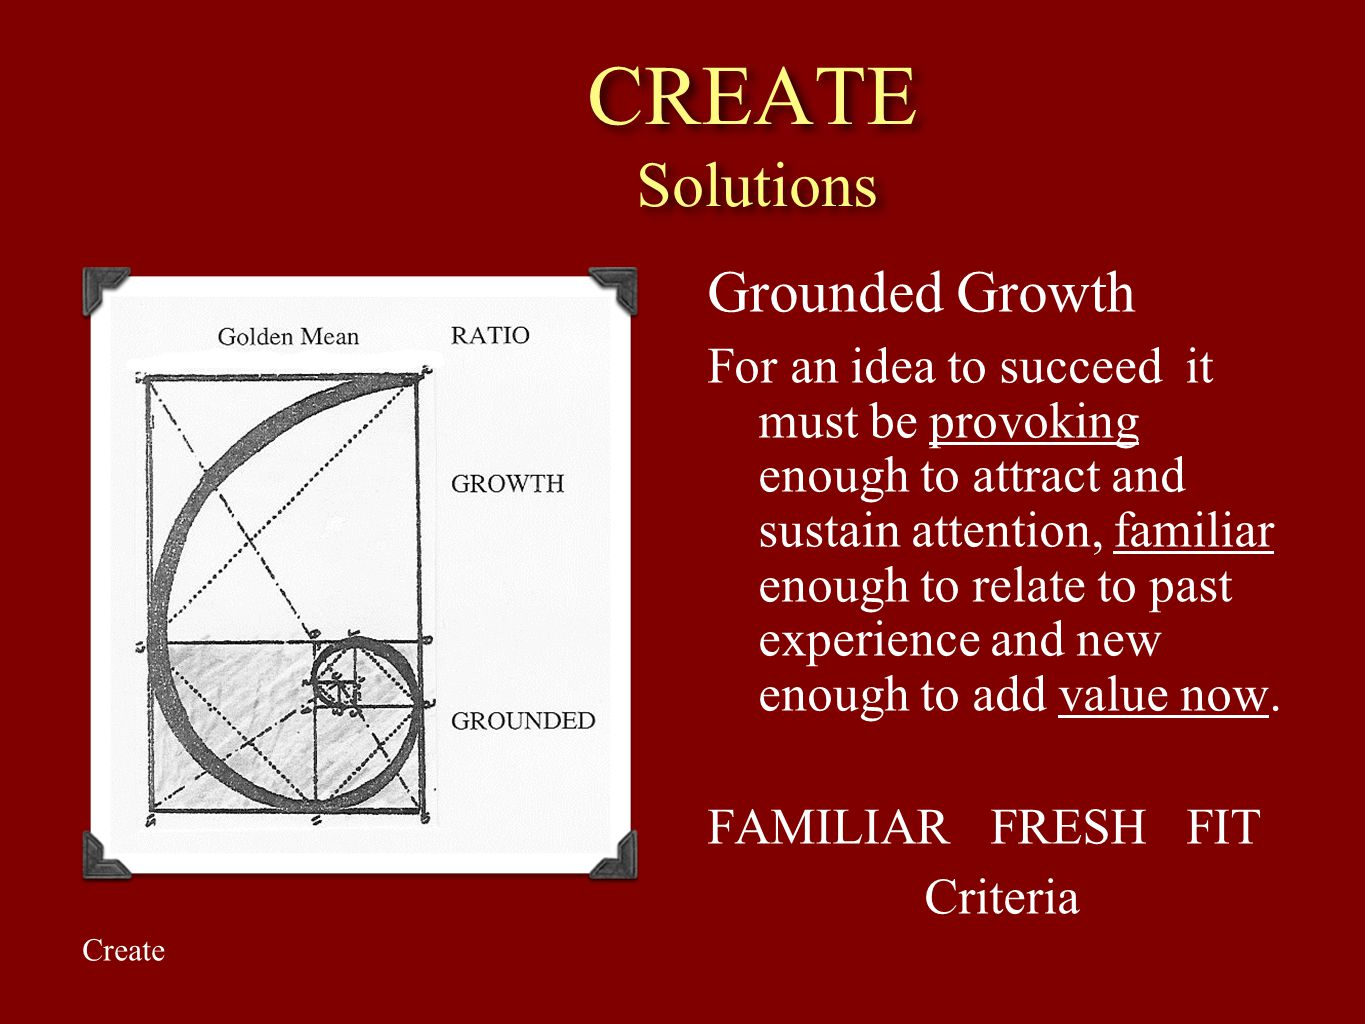 CREATE Solutions Grounded Growth